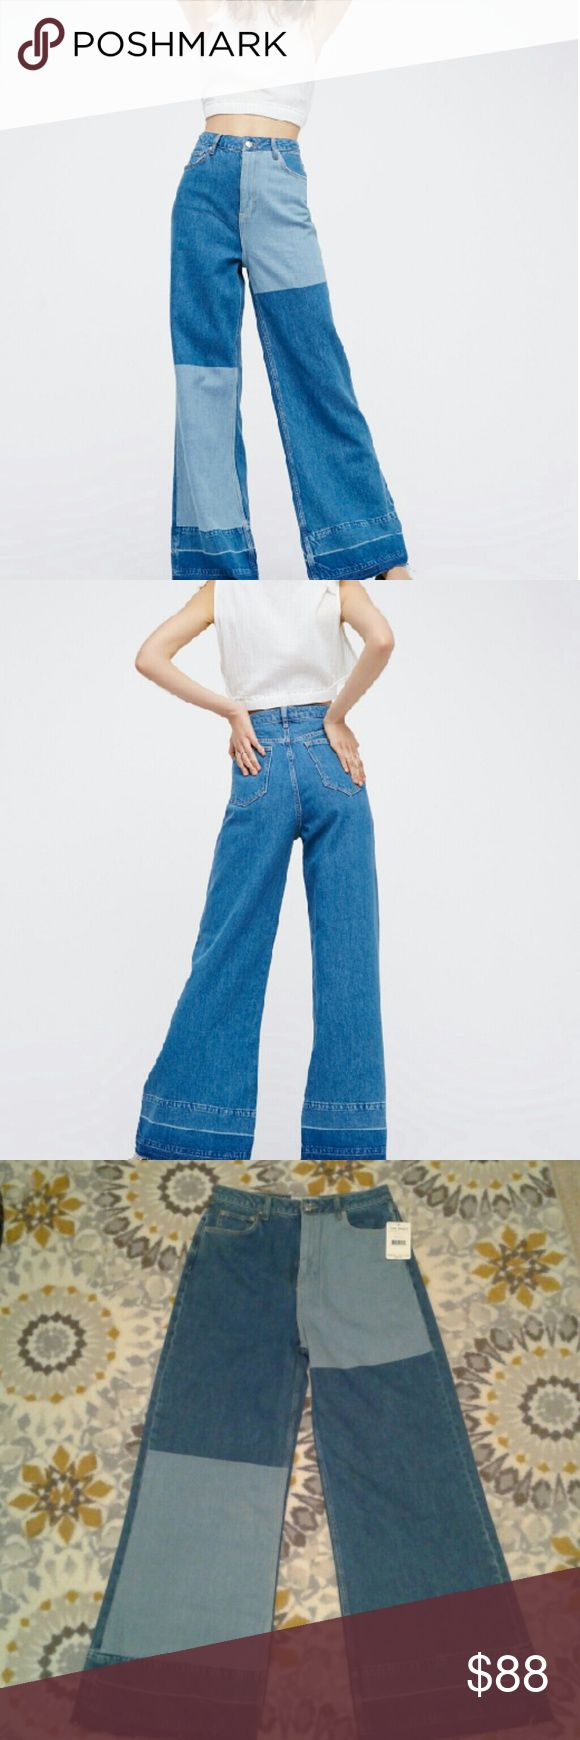 Free People Wide leg patchwork jeans NWT SZ 31. Blue. The fraying at the hems is intended. Higher waist. Free People Jeans Flare & Wide Leg